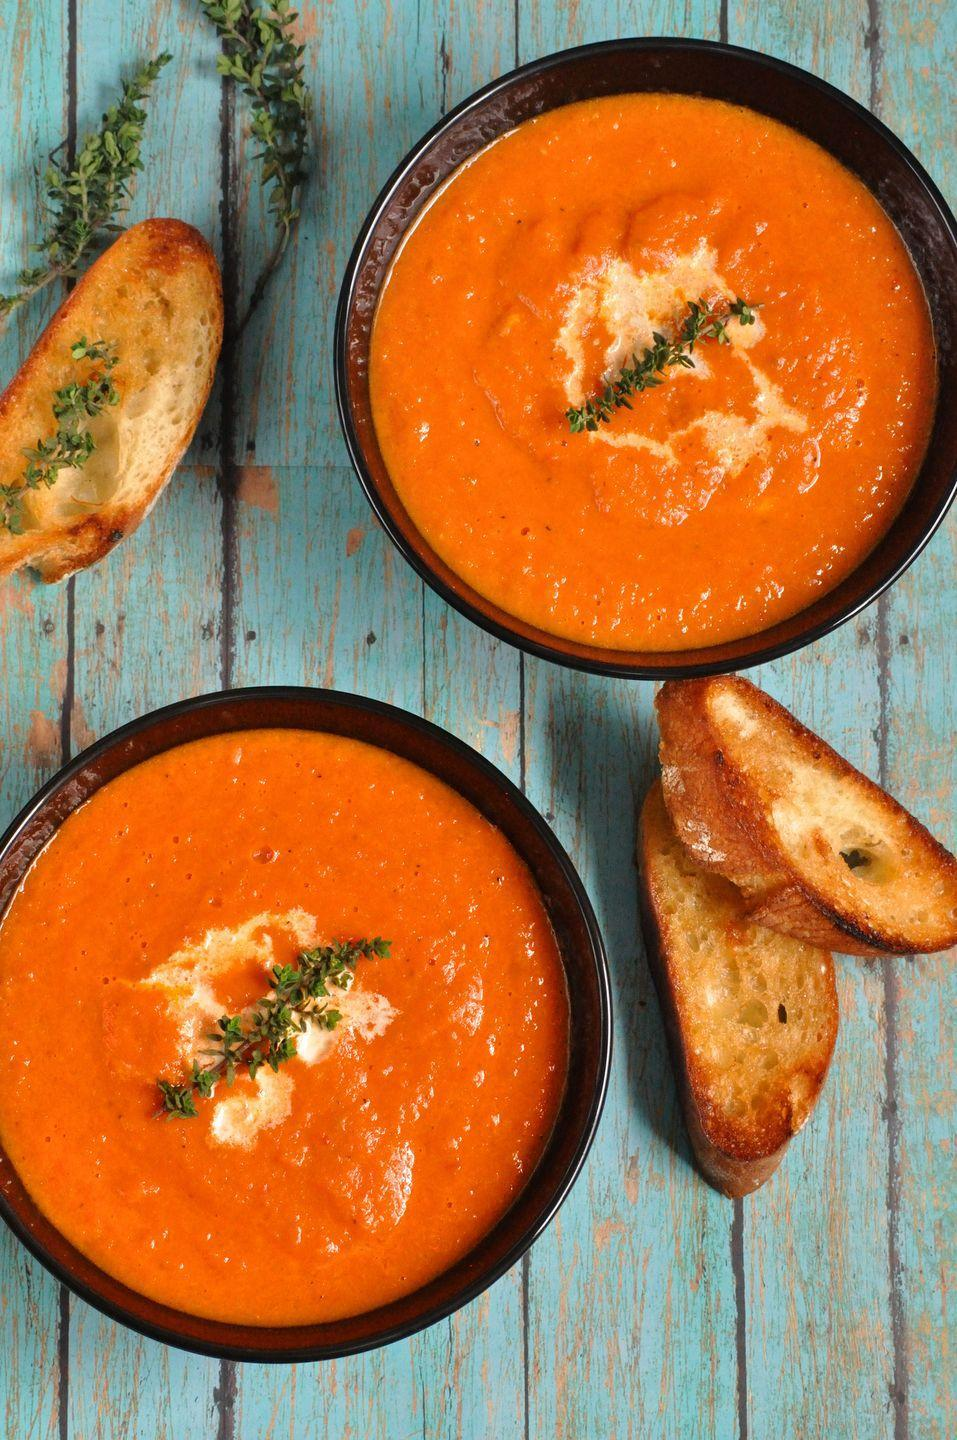 """<p>Not a fan on pumpkin? Any hearty soup is the perfect companion to a crisp fall night, so cozy up to a bowl of chicken noodle, tortilla, roasted butternut squash, baked potato, black bean, french onion, or split pea soup. If you love grilled cheese and tomato soup, consider taking the classic combination to the next level with this recipe for <a href=""""https://www.oprahmag.com/life/food/a29375055/oprah-tomato-soup-panini-recipe/"""" rel=""""nofollow noopener"""" target=""""_blank"""" data-ylk=""""slk:chipotle tomato soup and a truffled goat cheese and fried green tomato panini"""" class=""""link rapid-noclick-resp"""">chipotle tomato soup and a truffled goat cheese and fried green tomato panini</a>, courtesy of Oprah's chef.<br></p>"""